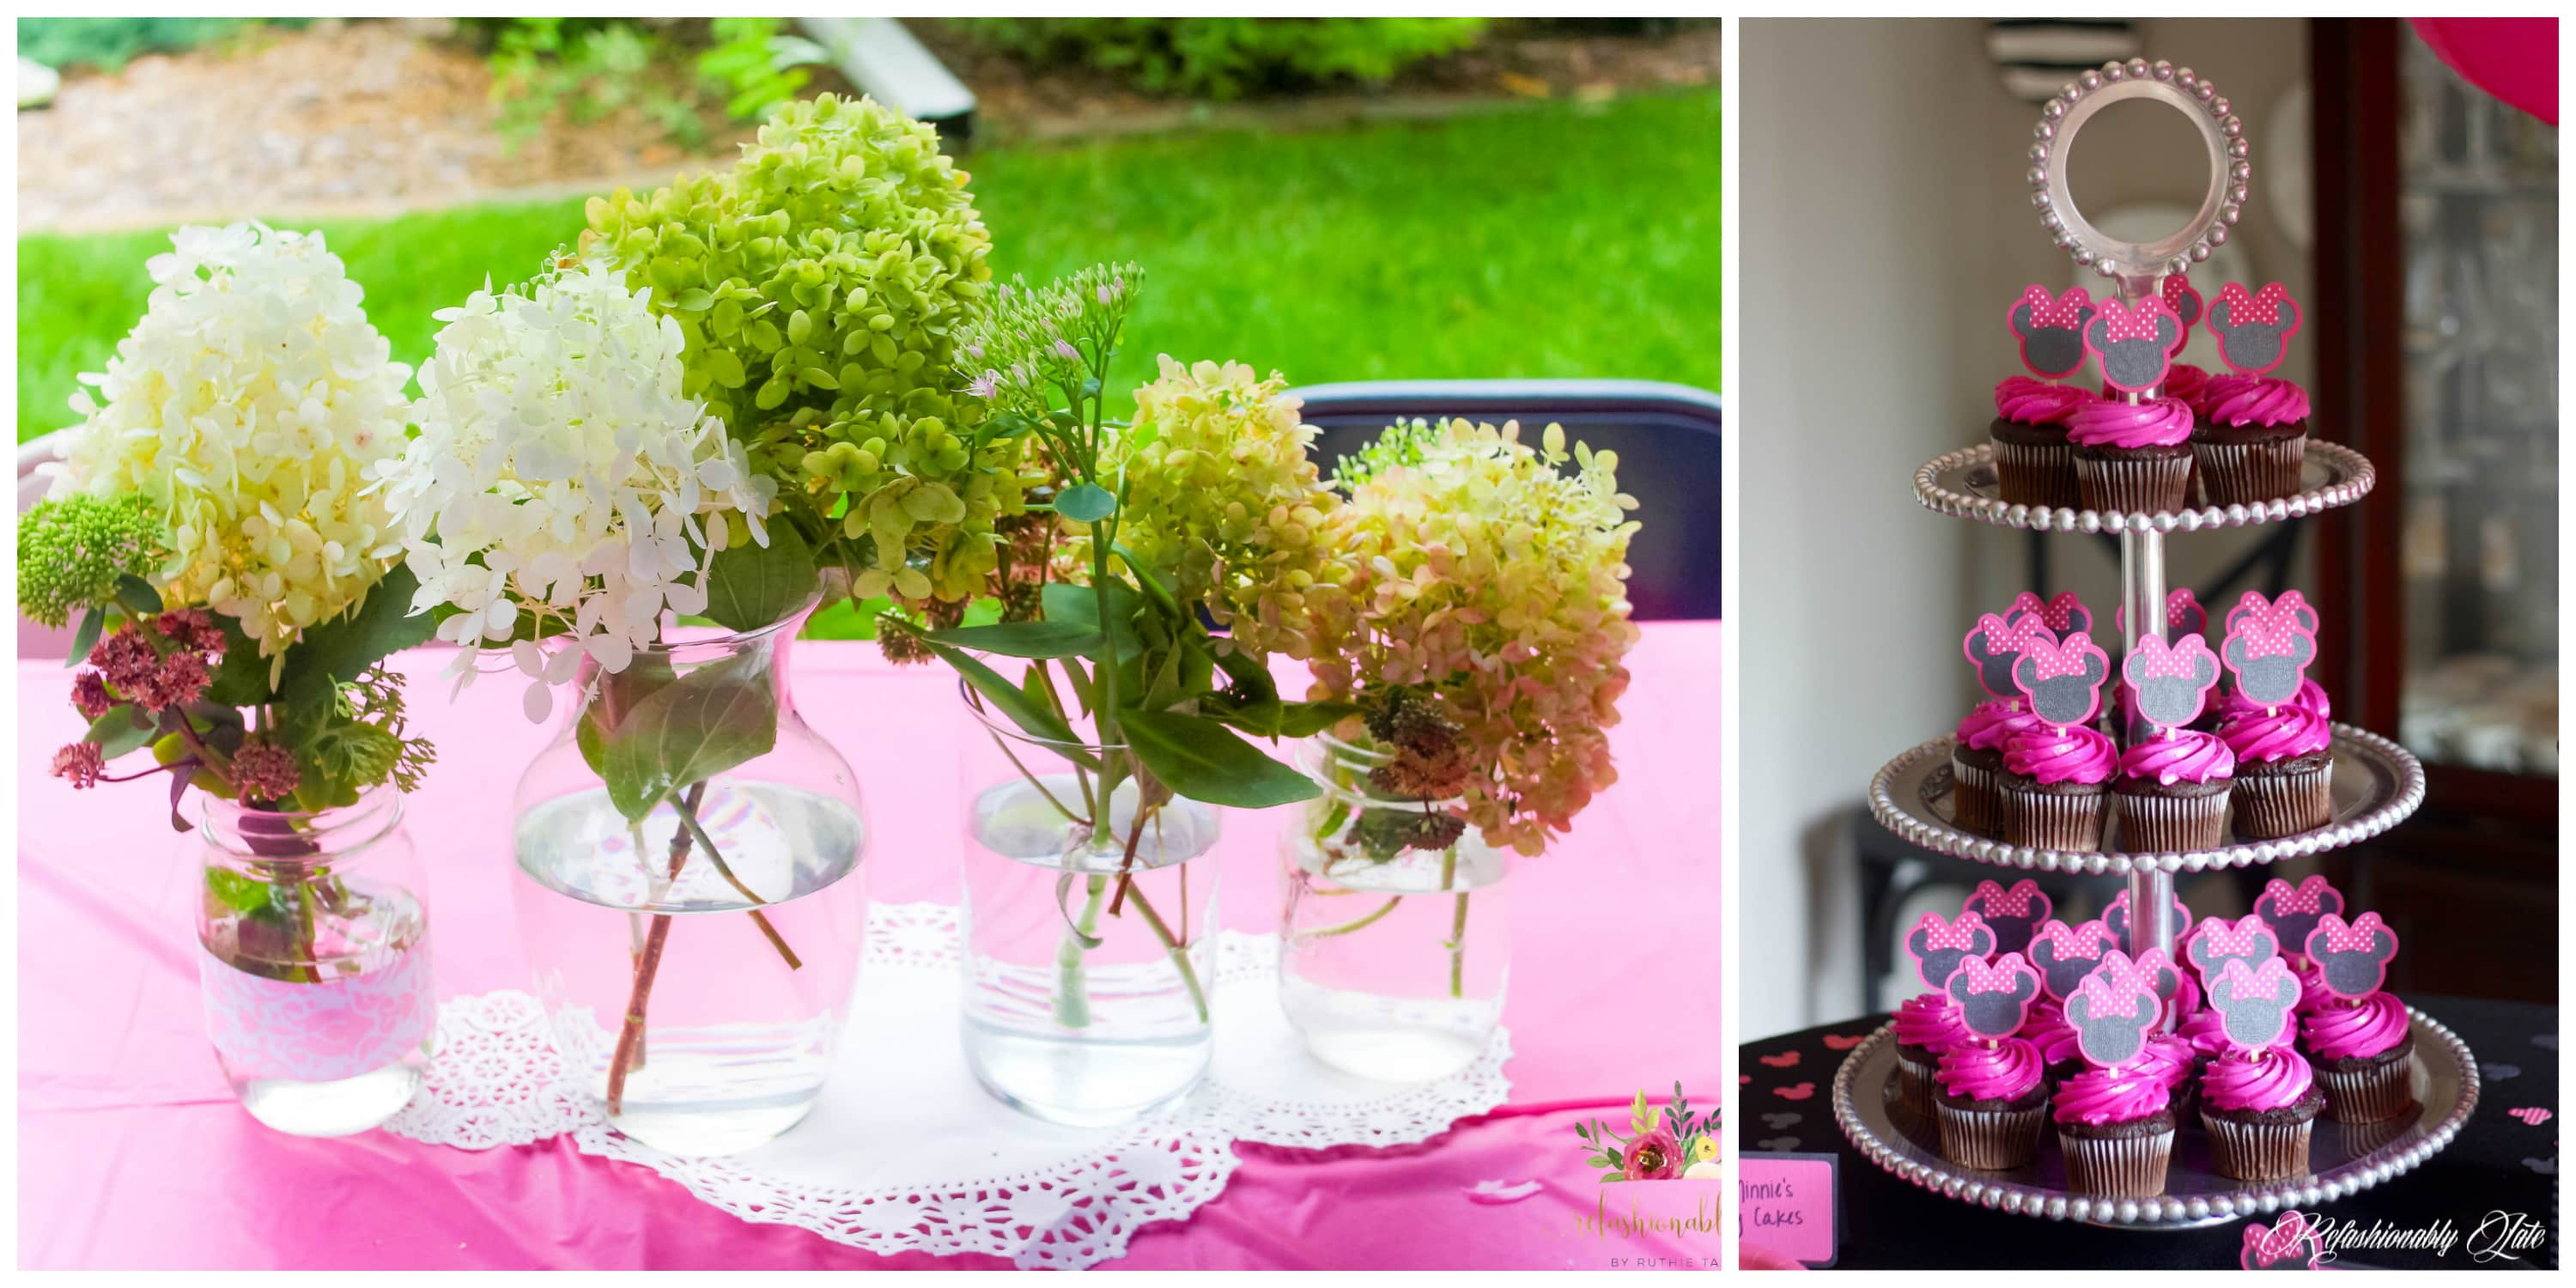 4 vases with hydrangeas in them sitting on a pink tablecloth and minnie mouse cupcakes on a tiered tray